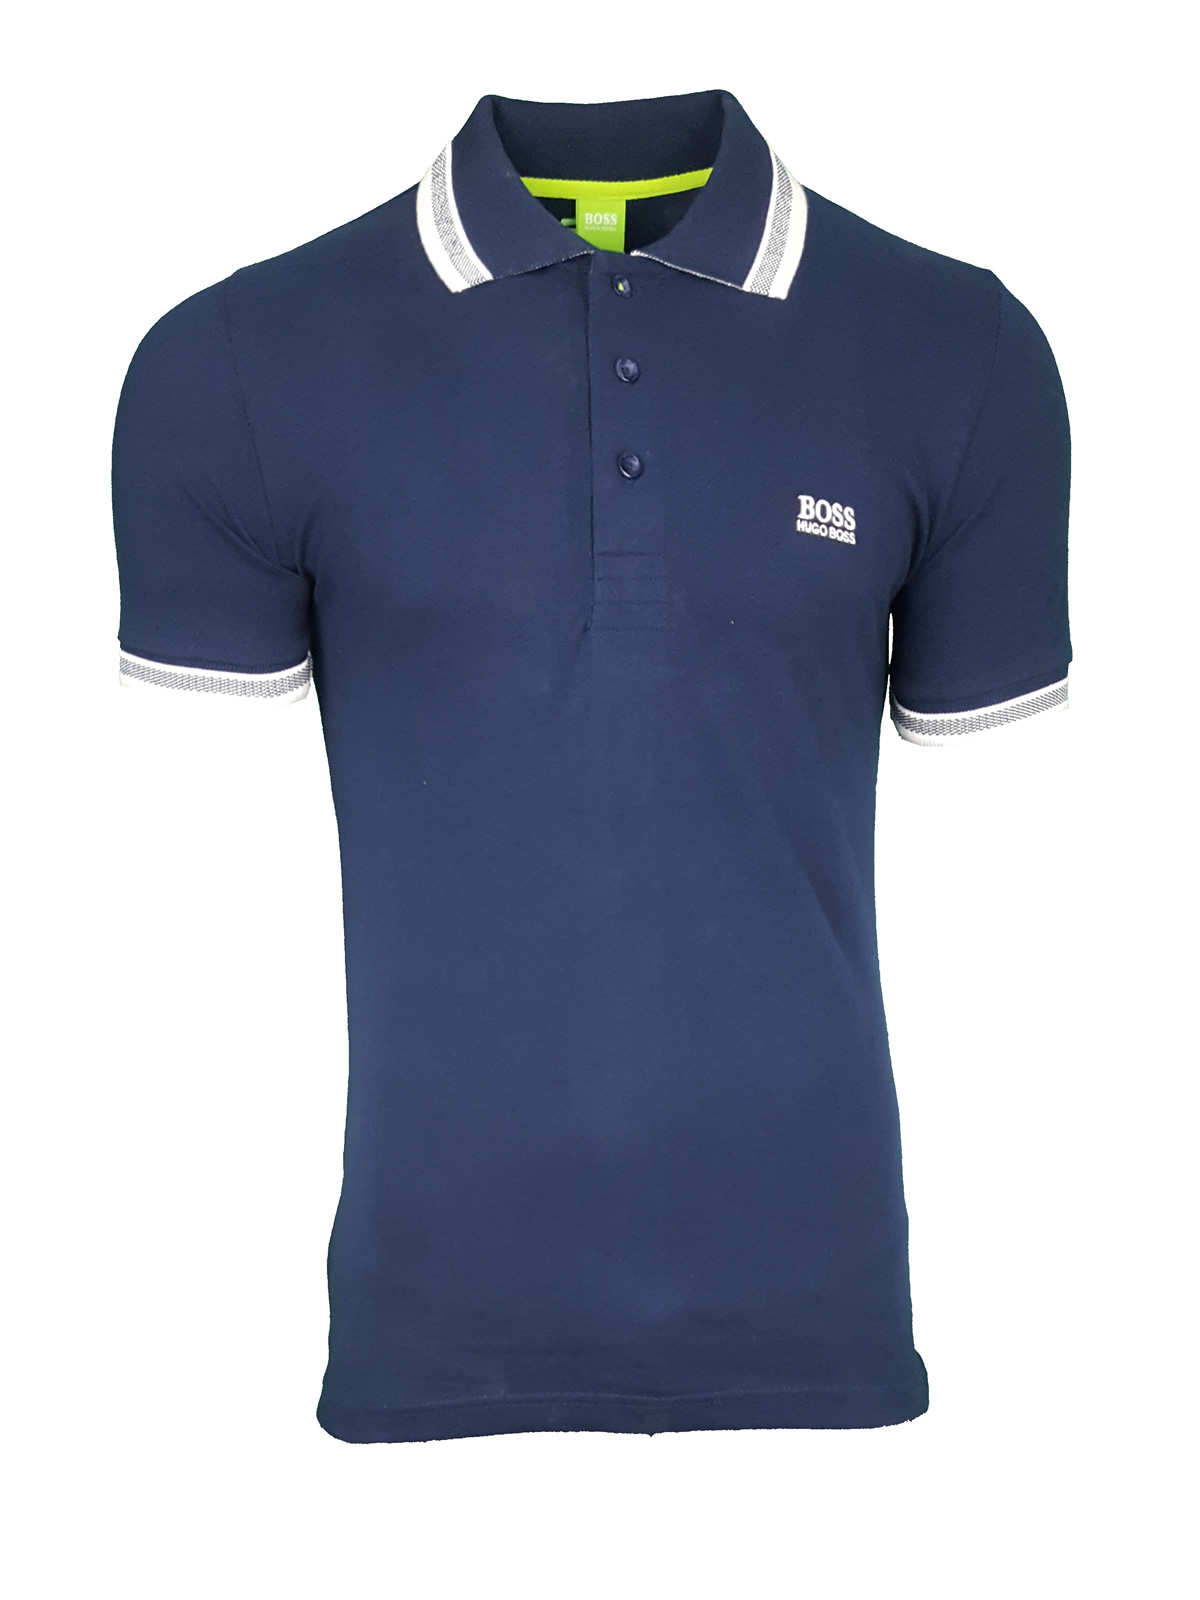 52acdb93 Hugo Boss Paddy Pro. Short Sleeve Polo Shirt. Modern Fit in Navy Blue |  INTOTO7 Menswear